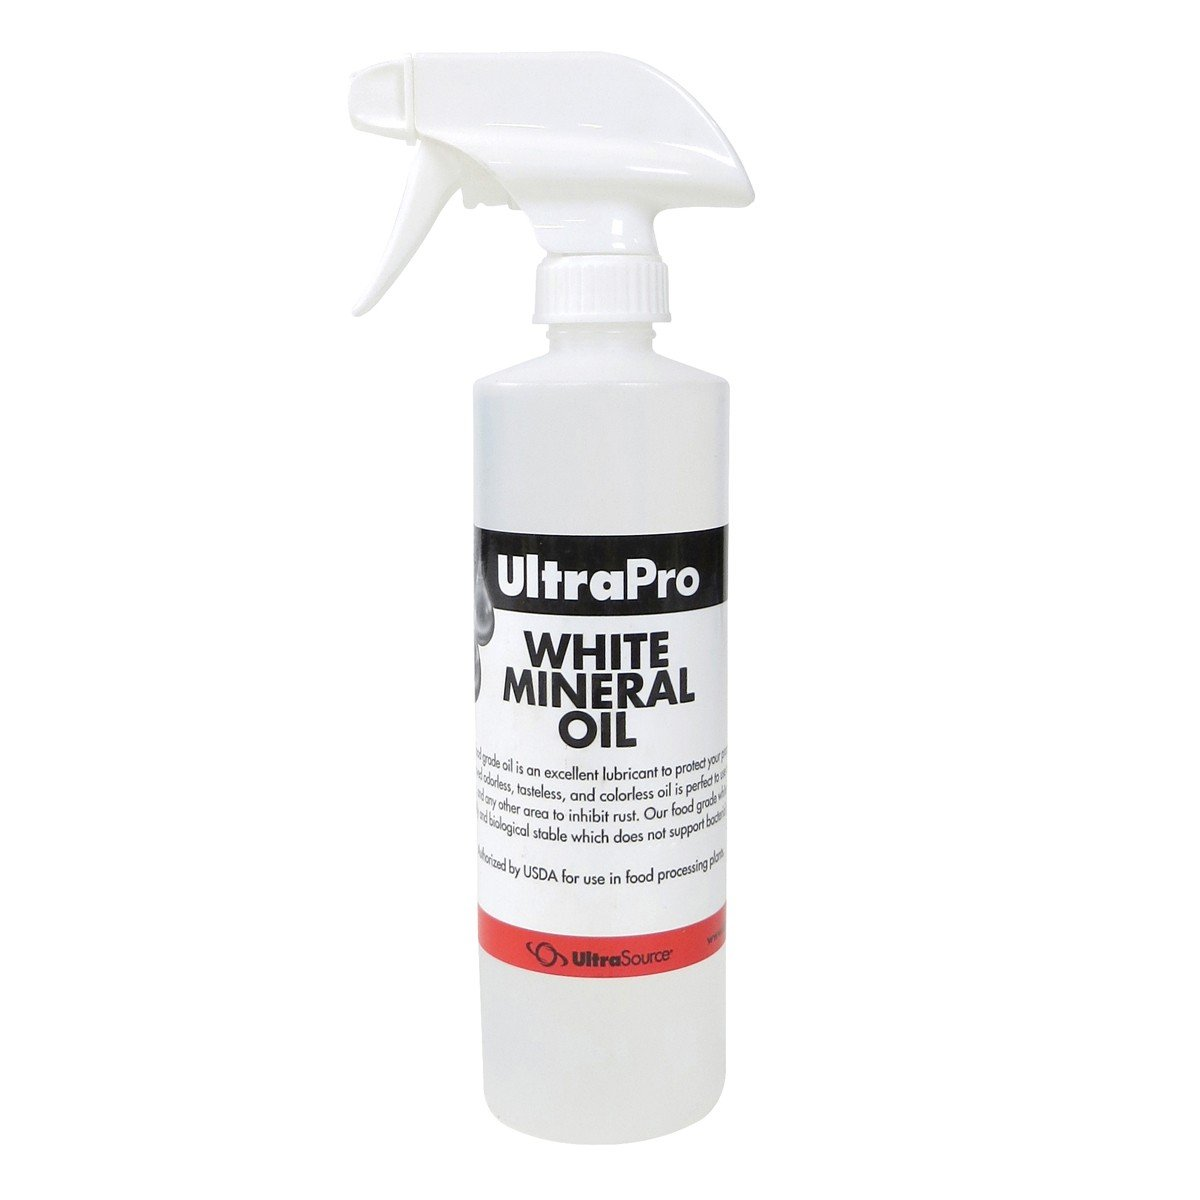 16 oz. Spray Bottle - Food Grade Mineral Oil for Stainless Steel, Cutting Boards and Butcher Blocks, NSF UltraSource 501331